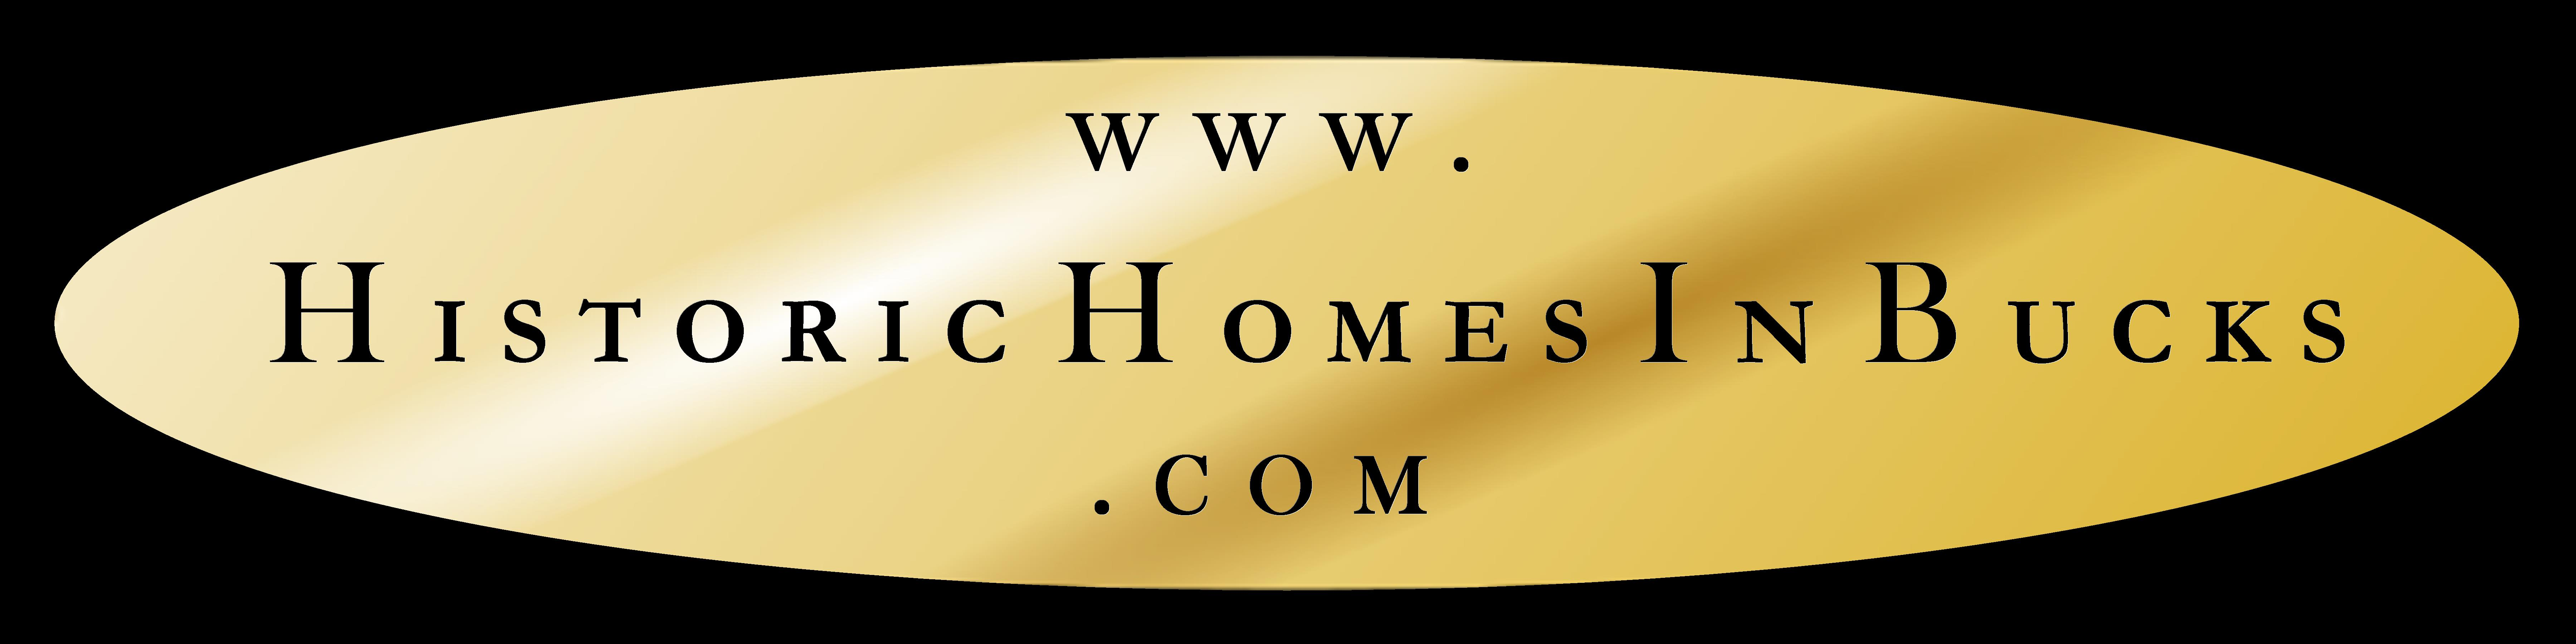 Historic Homes In Bucks, New Hope Realtors, Doylestown Realtors, WEIDEL Real Estate, New Hope Realtor, Doylestown Realtor, WEIDEL Realtors, Steve Walny, New Hope Real Estate